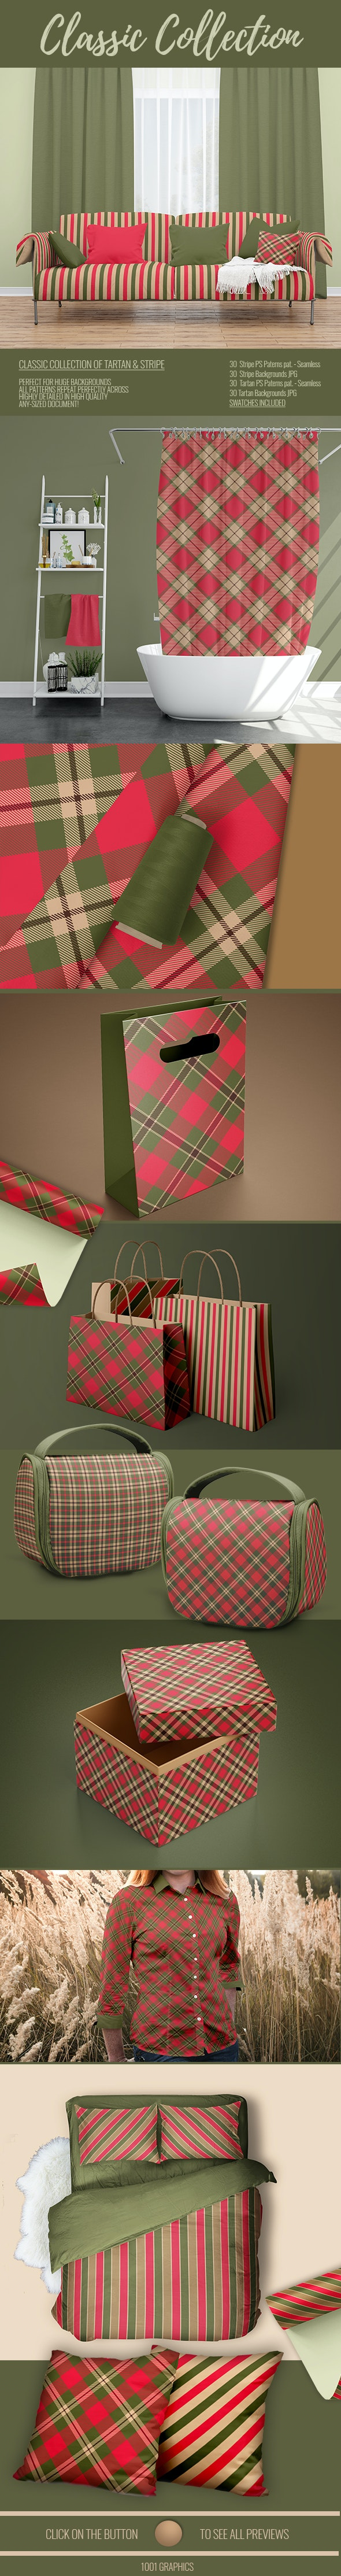 Classic Collection - 60 Tartan & Stripe Backgrounds + 60 PS Patterns. - Textures / Fills / Patterns Illustrator